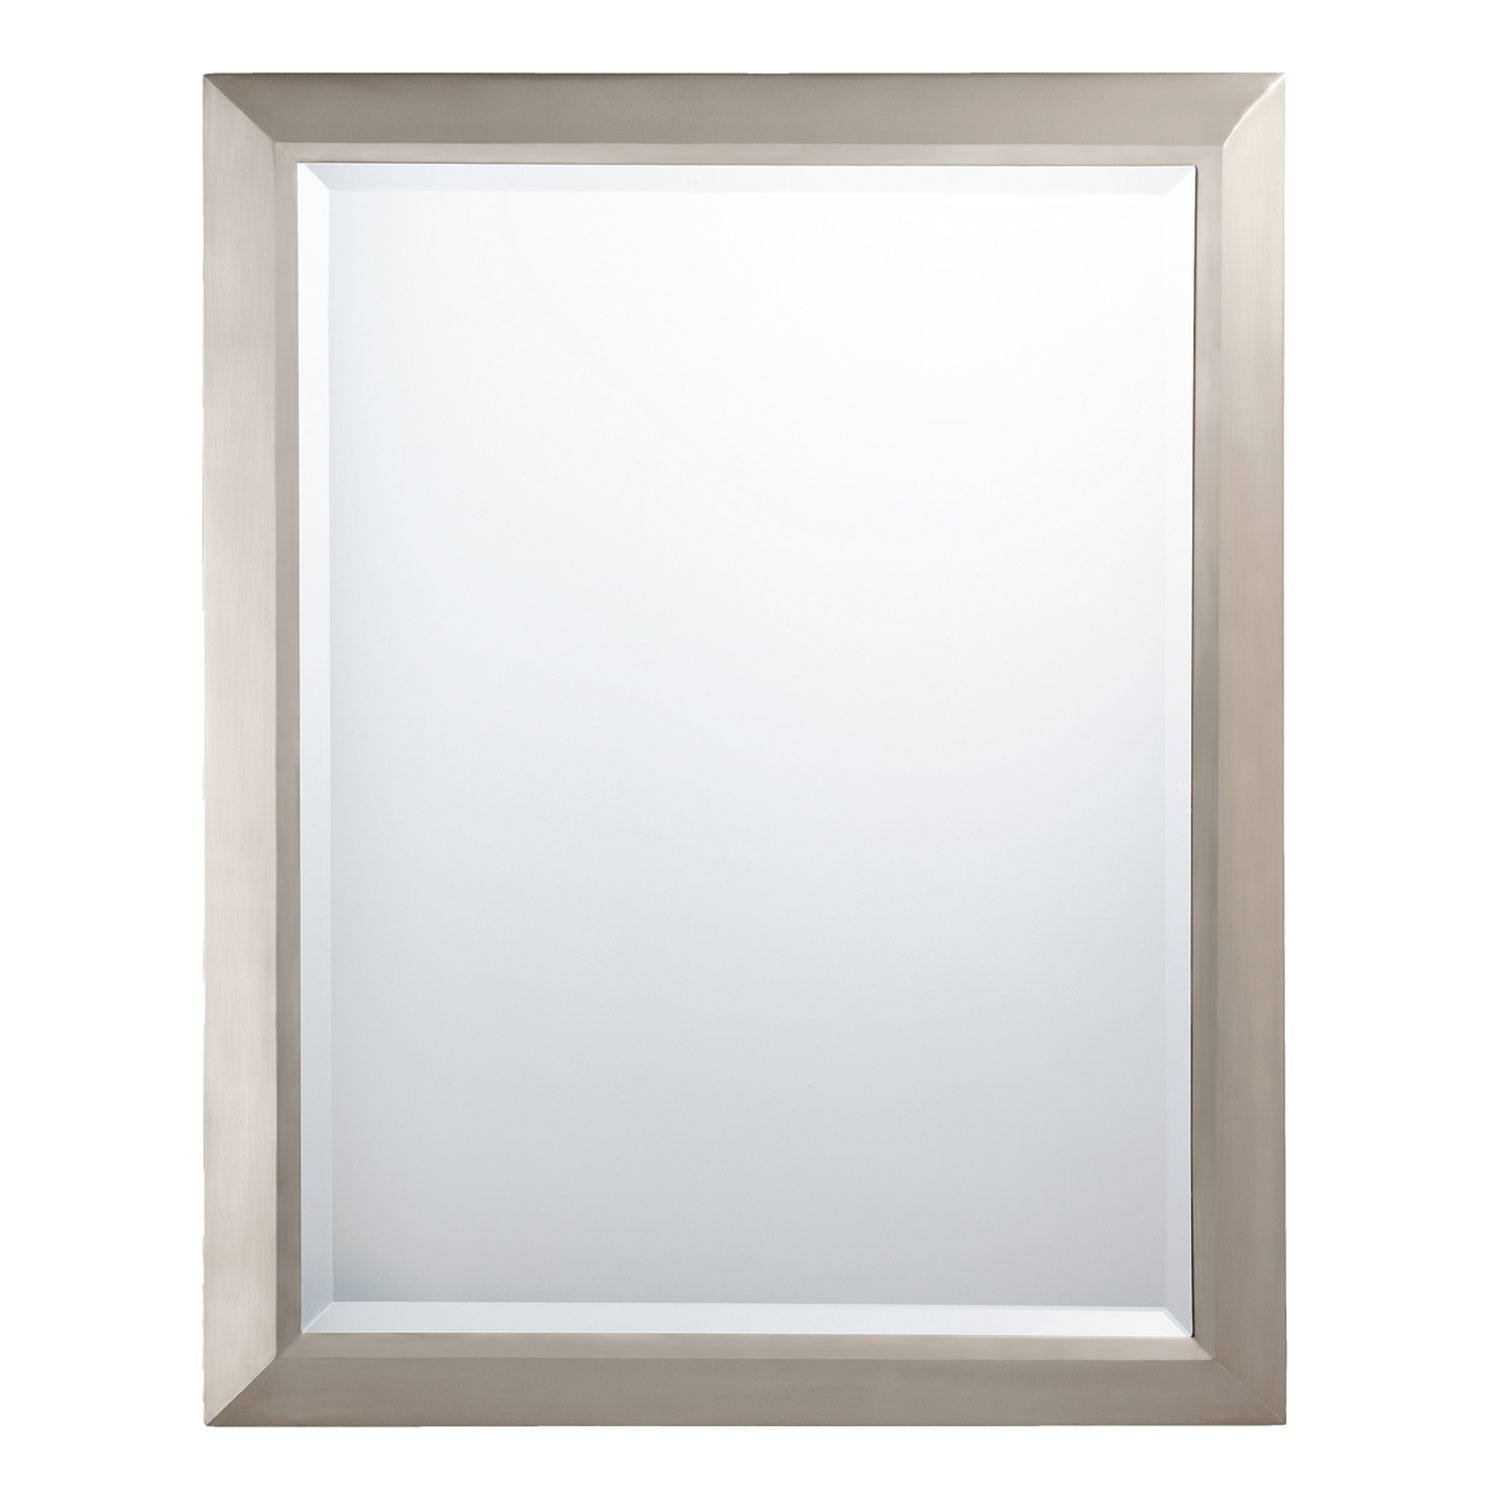 Brushed Nickel Rectangular Mirror Kichler Rectangle Mirrors Home Decor For Large Frameless Mirror (Image 3 of 15)